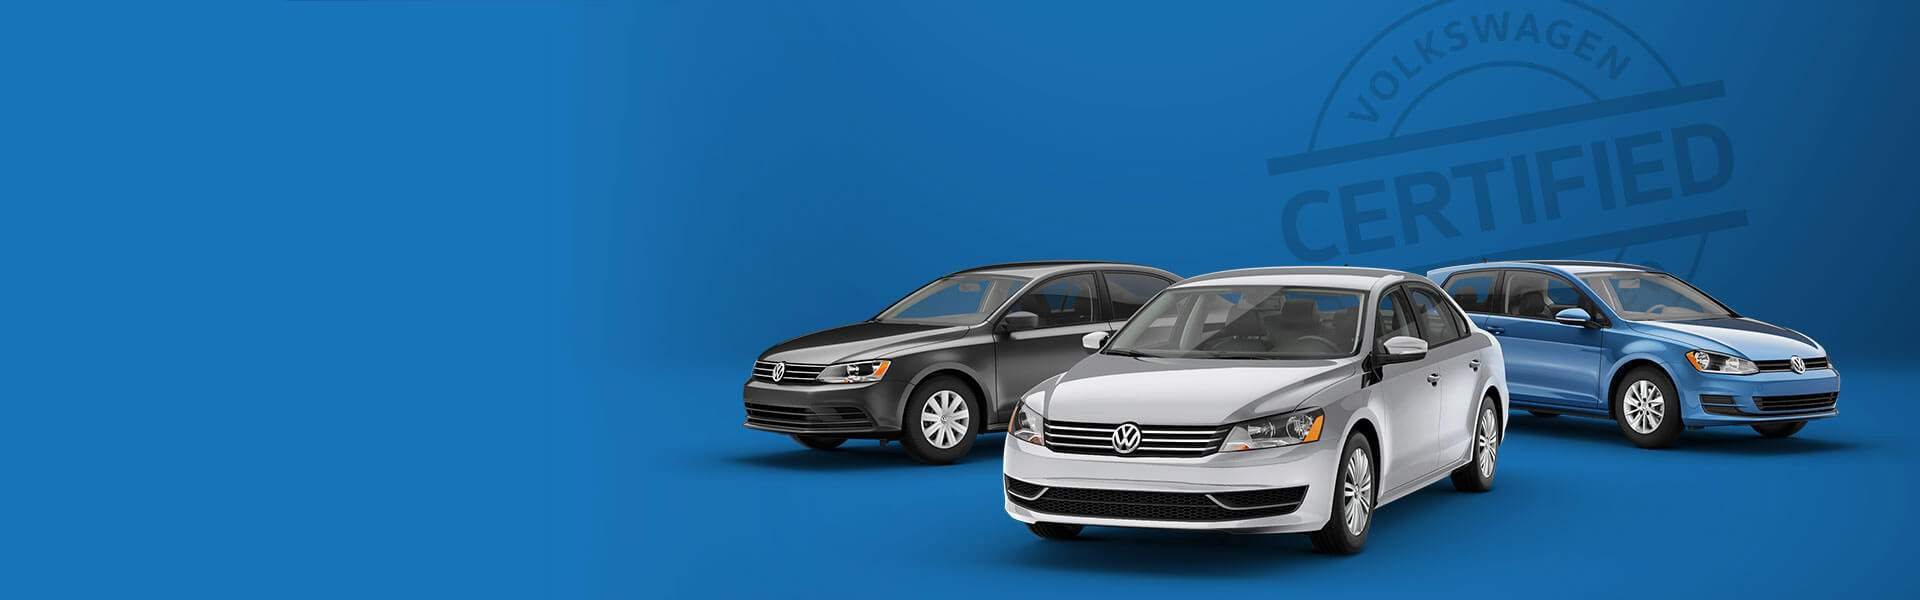 Volkswagen Certified Pre-Owned in Miami, FL